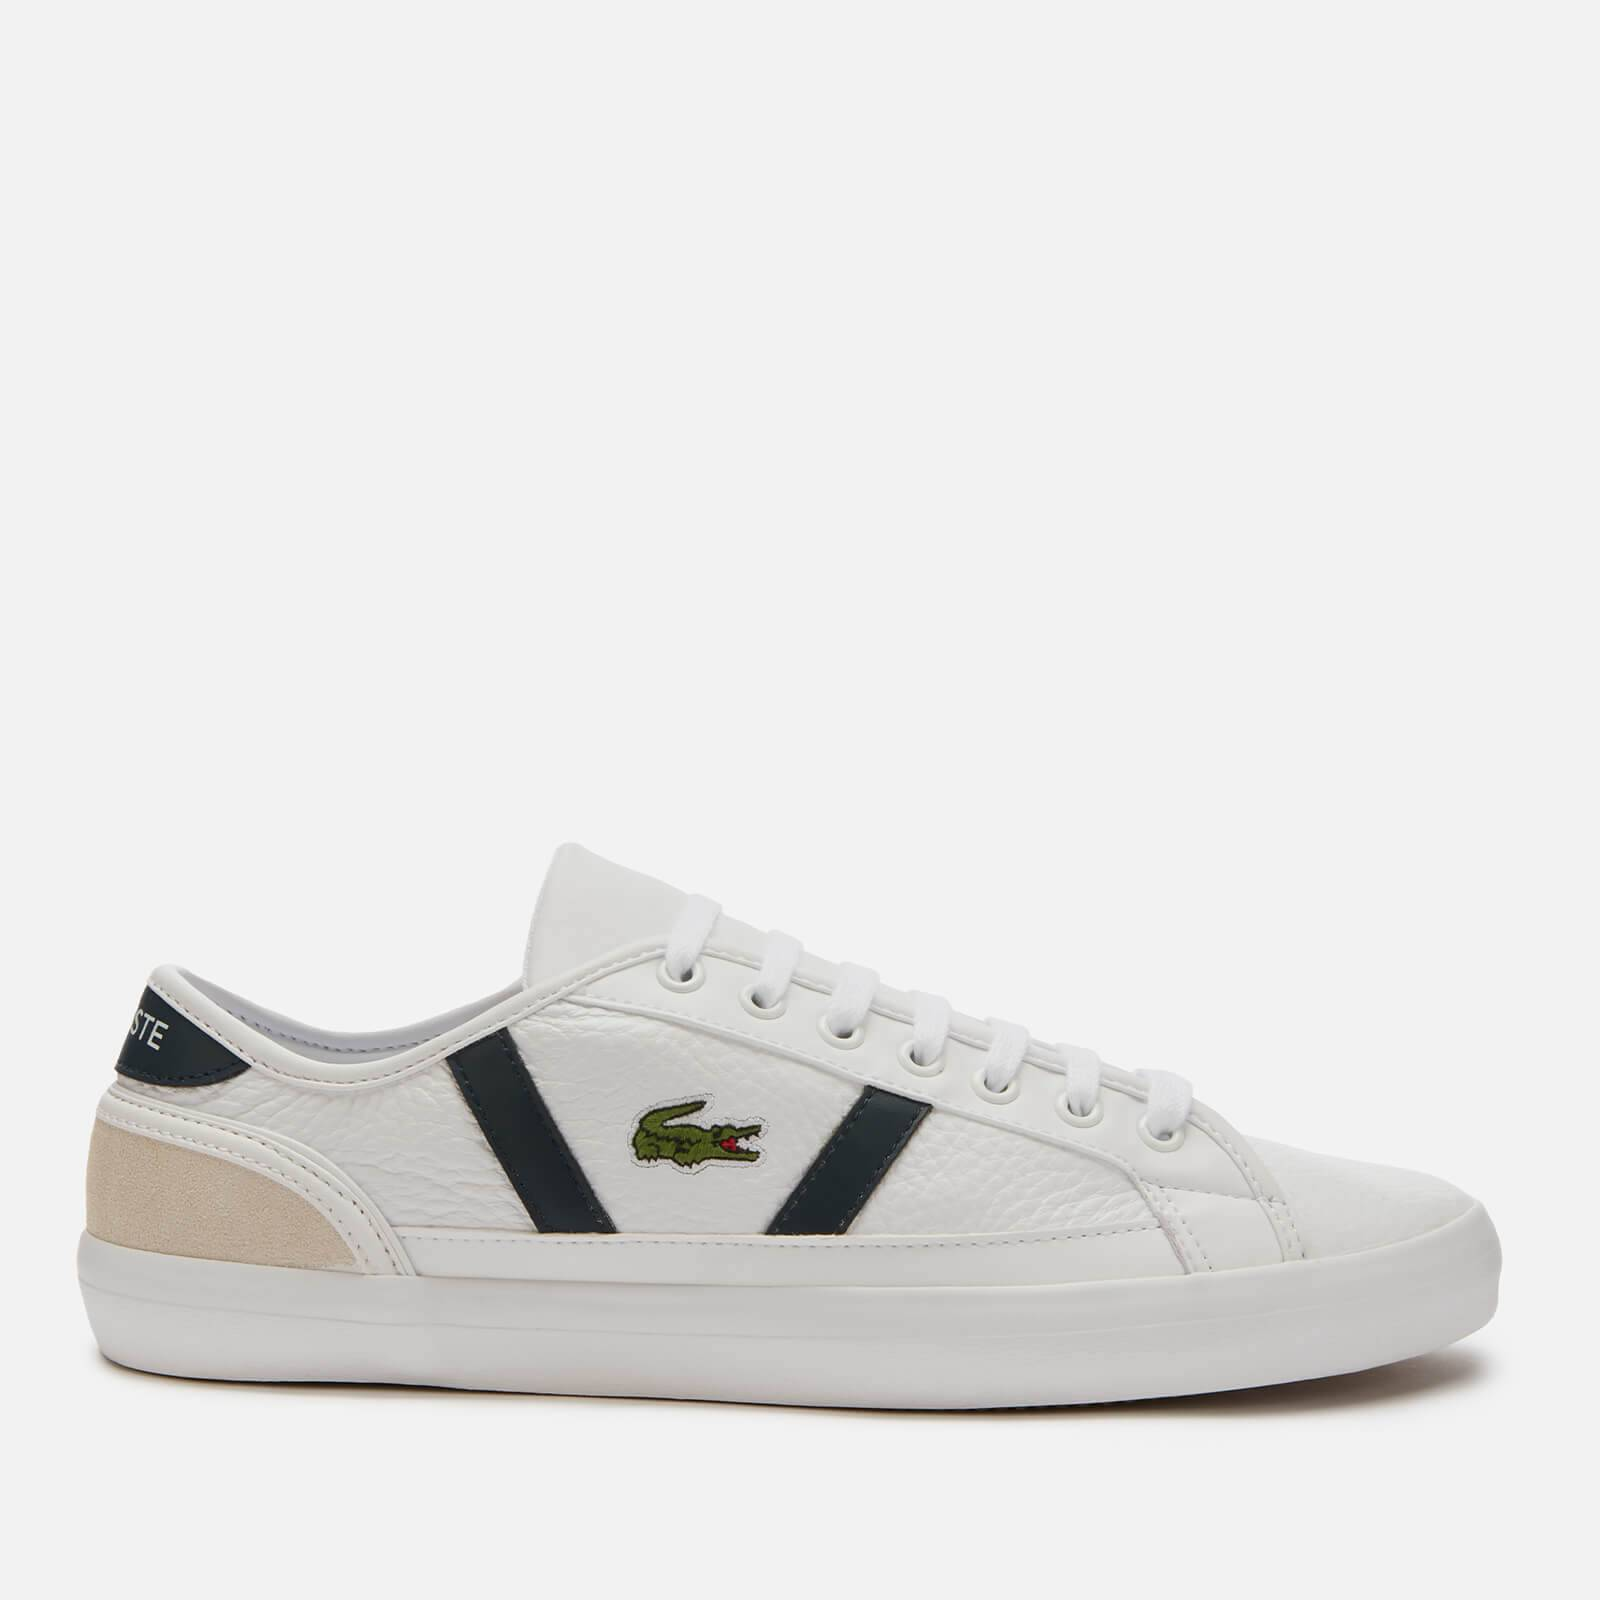 Lacoste Men's Sideline 120 3 Low Top Trainers - White/Off White - UK 11